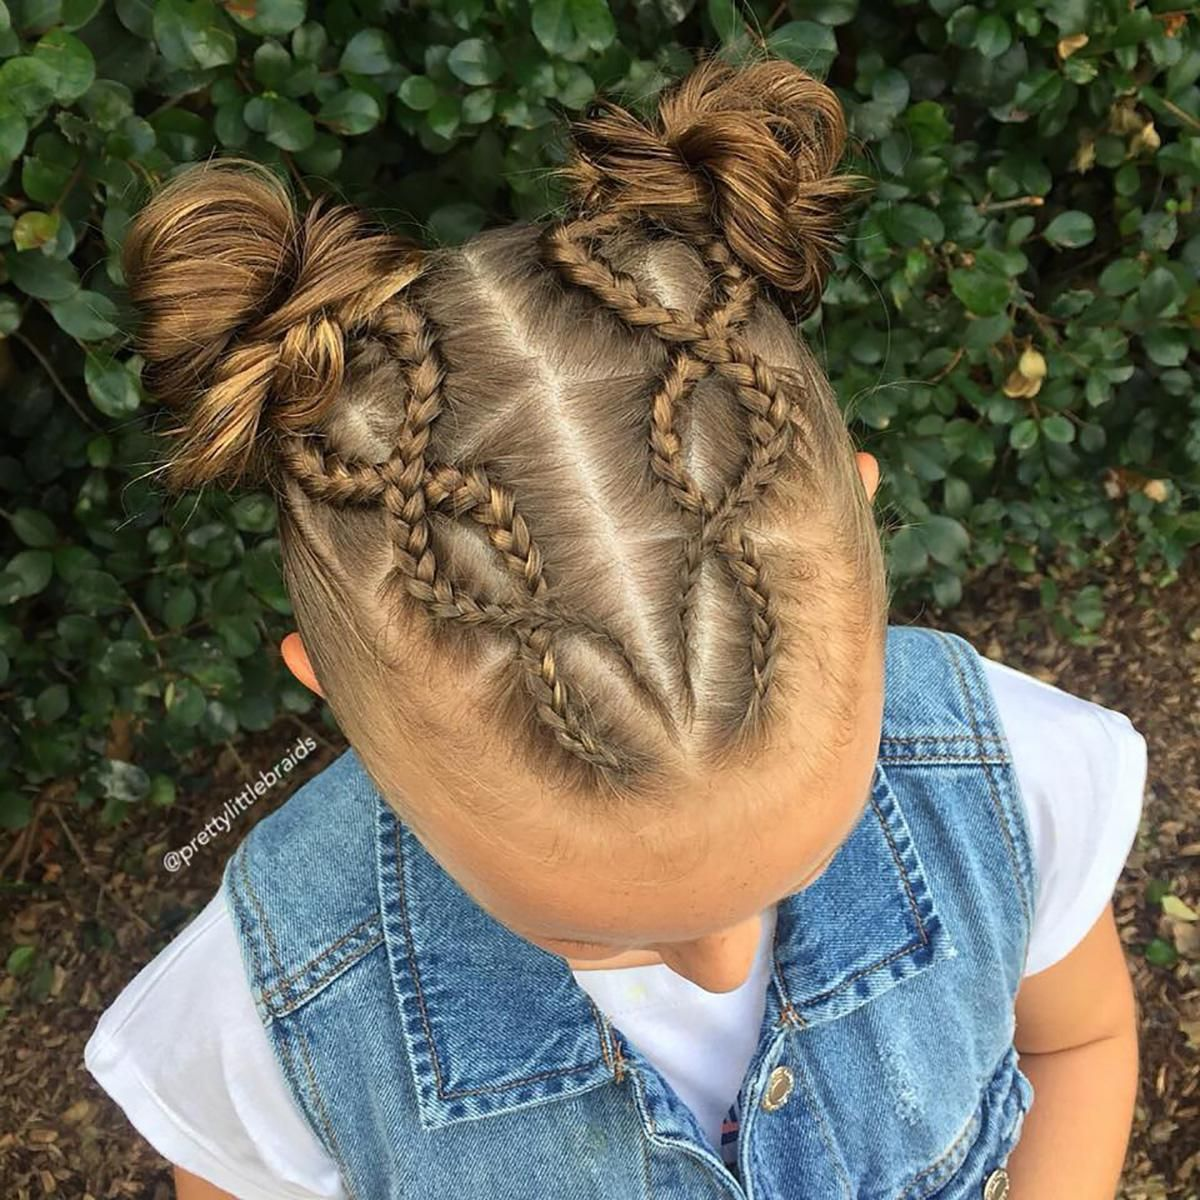 Versatile Braid Styles For Girls That Moms Must Try On Their Daughters - Stylendesigns